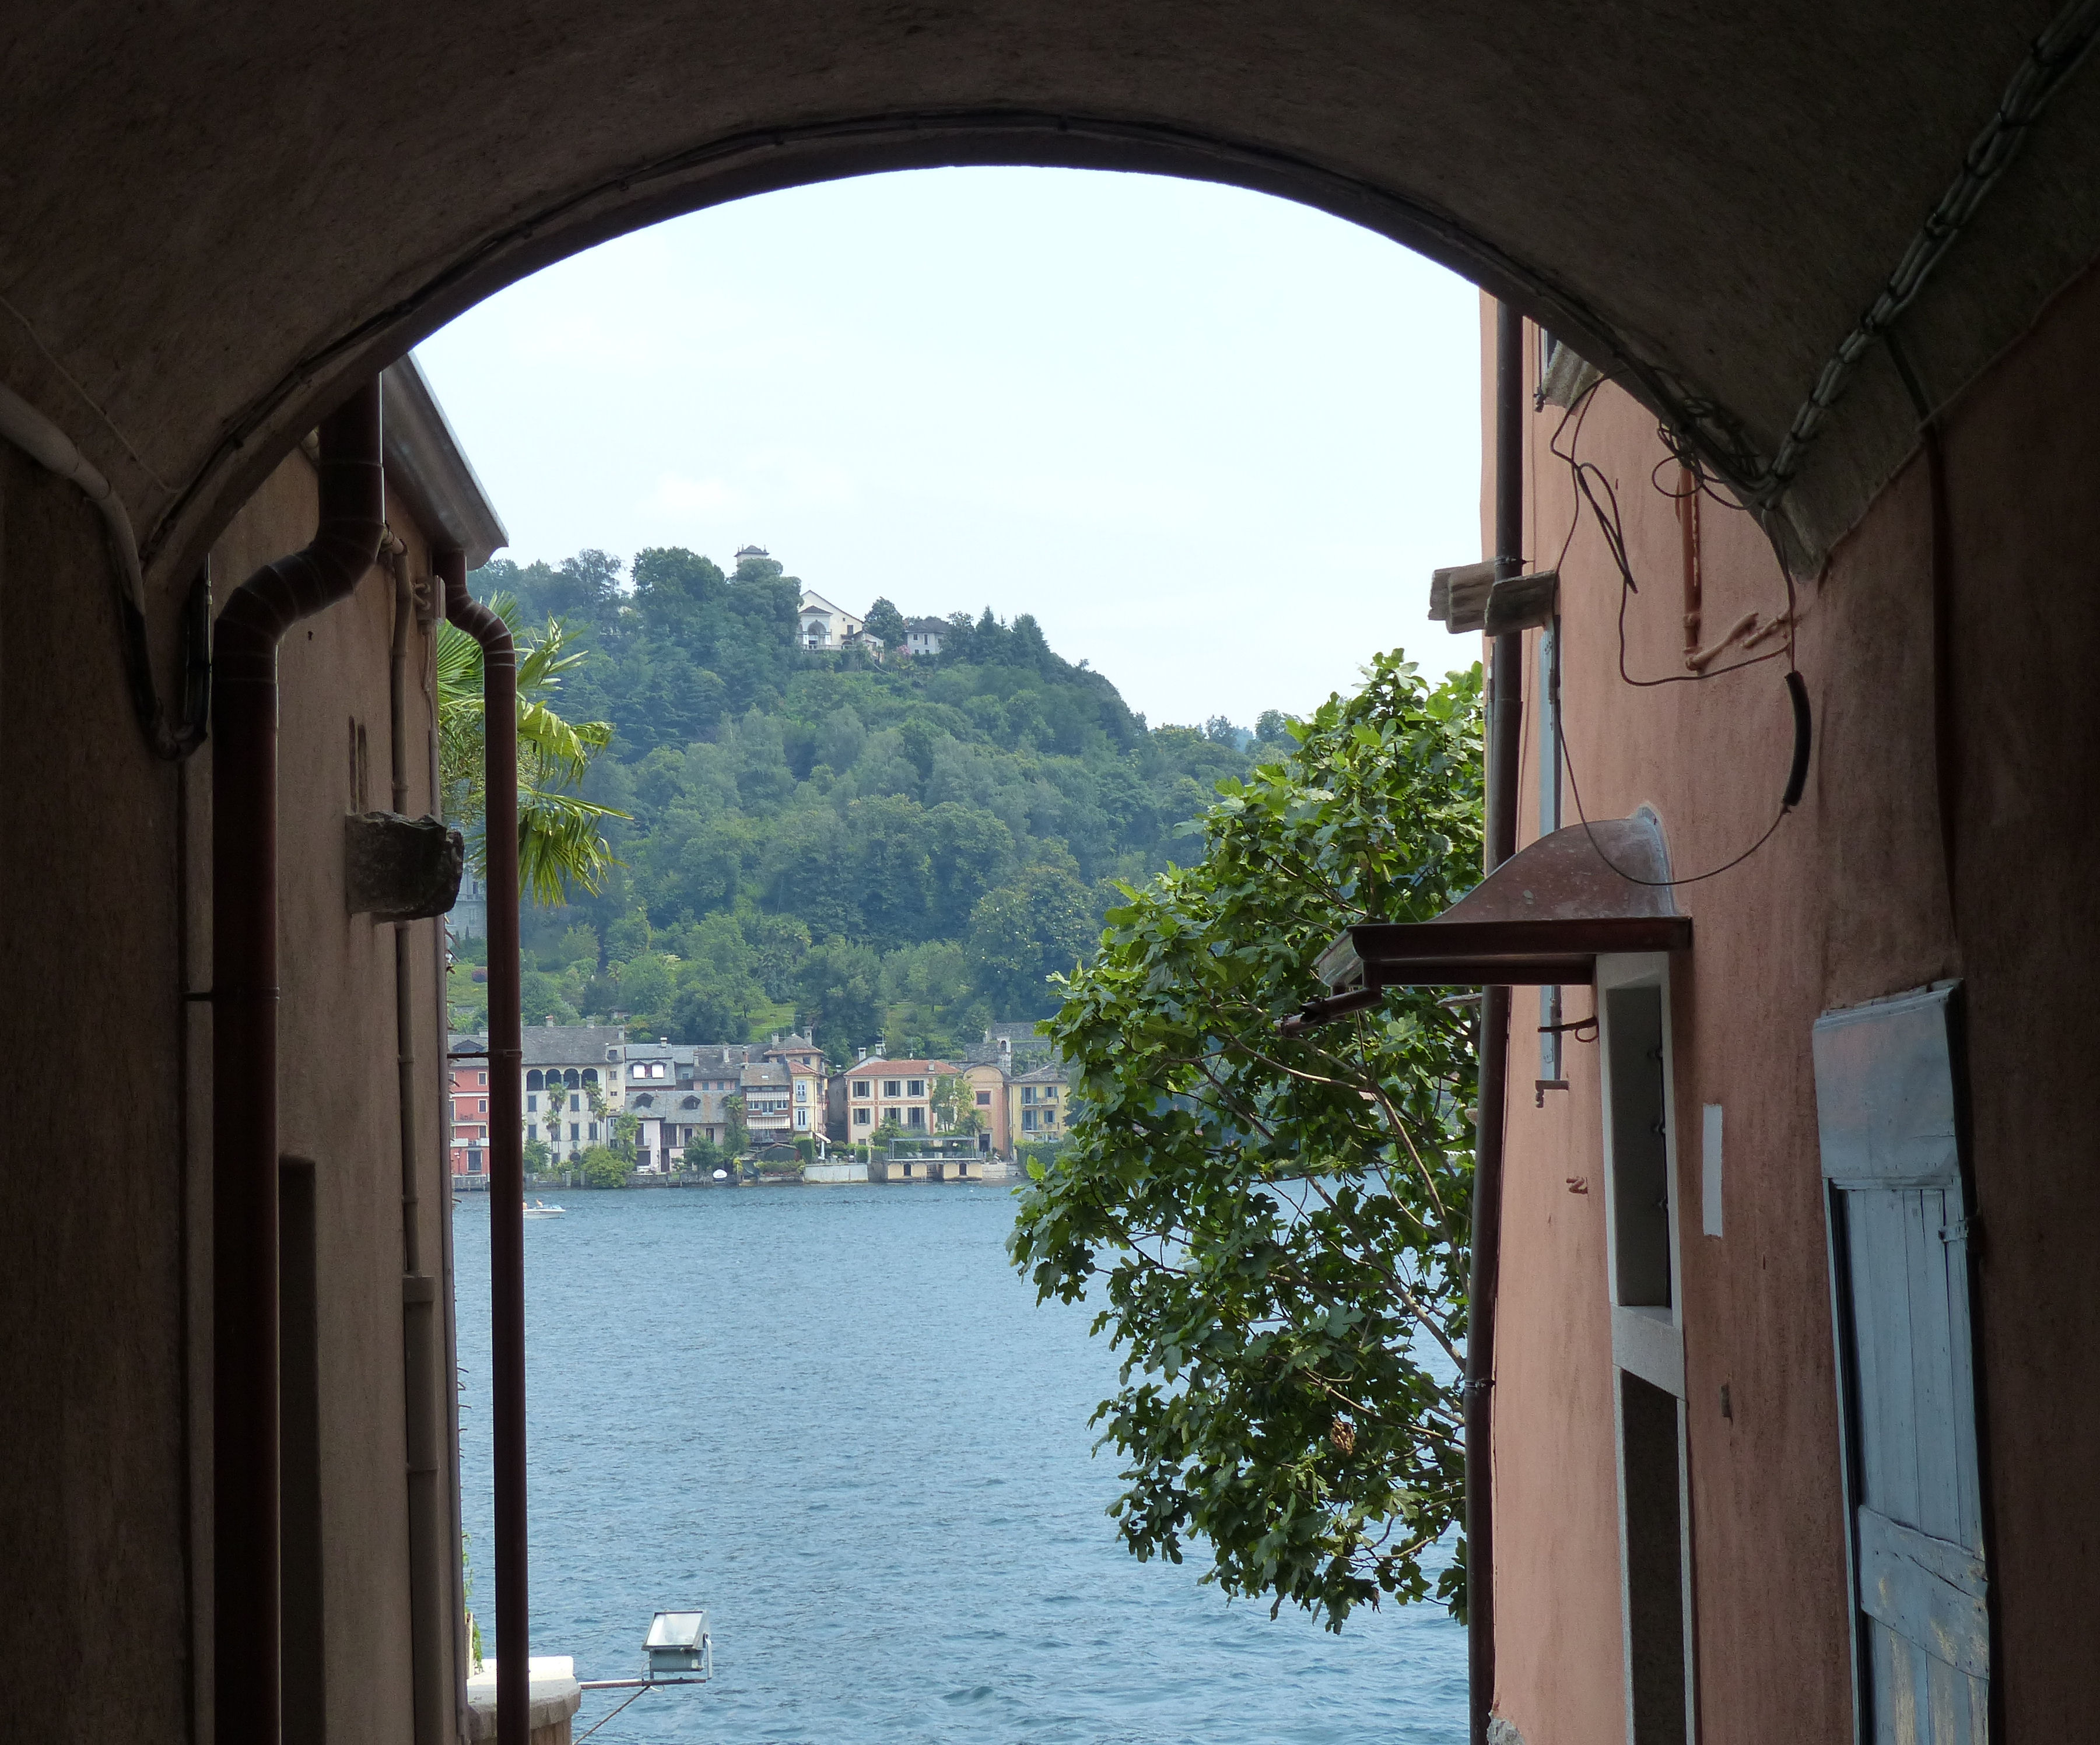 © Dipartimento di Scienze della Vita, Università di Trieste<br>by Andrea Moro<br>Comune di Orta San Giulio, Isola di San Giulio, NO, Piemonte, Italia, 23/07/2012<br>Distributed under CC-BY-SA 4.0 license.